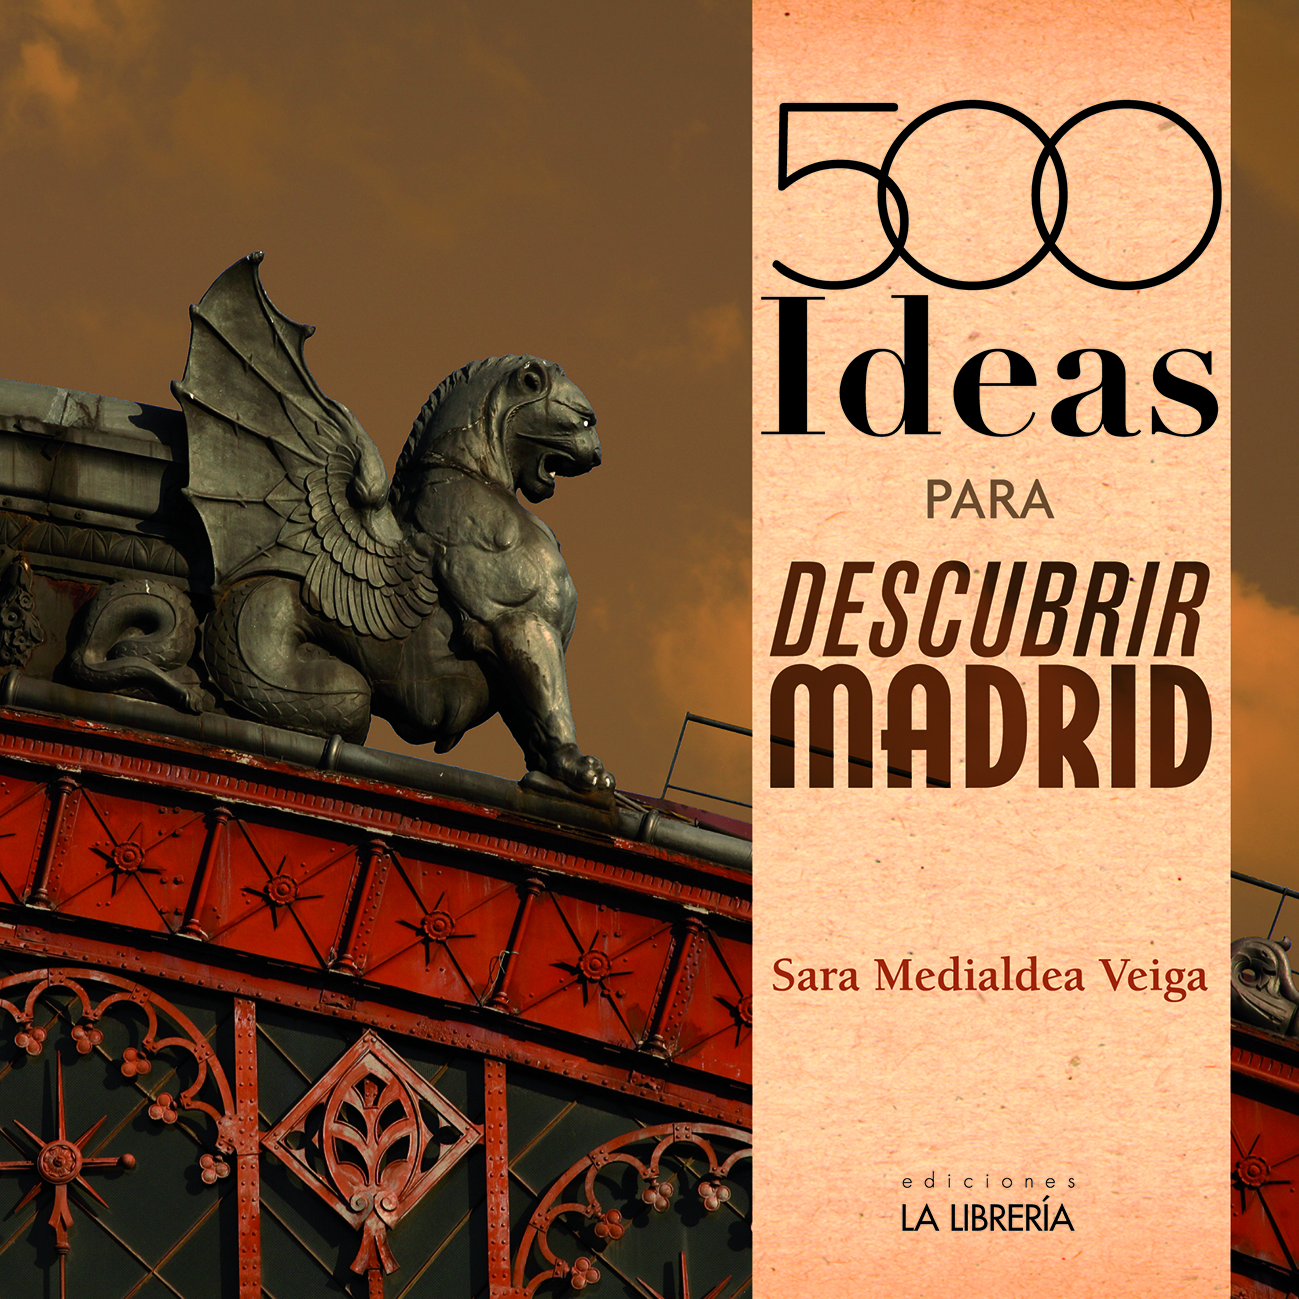 500 Ideas para descubrir Madrid